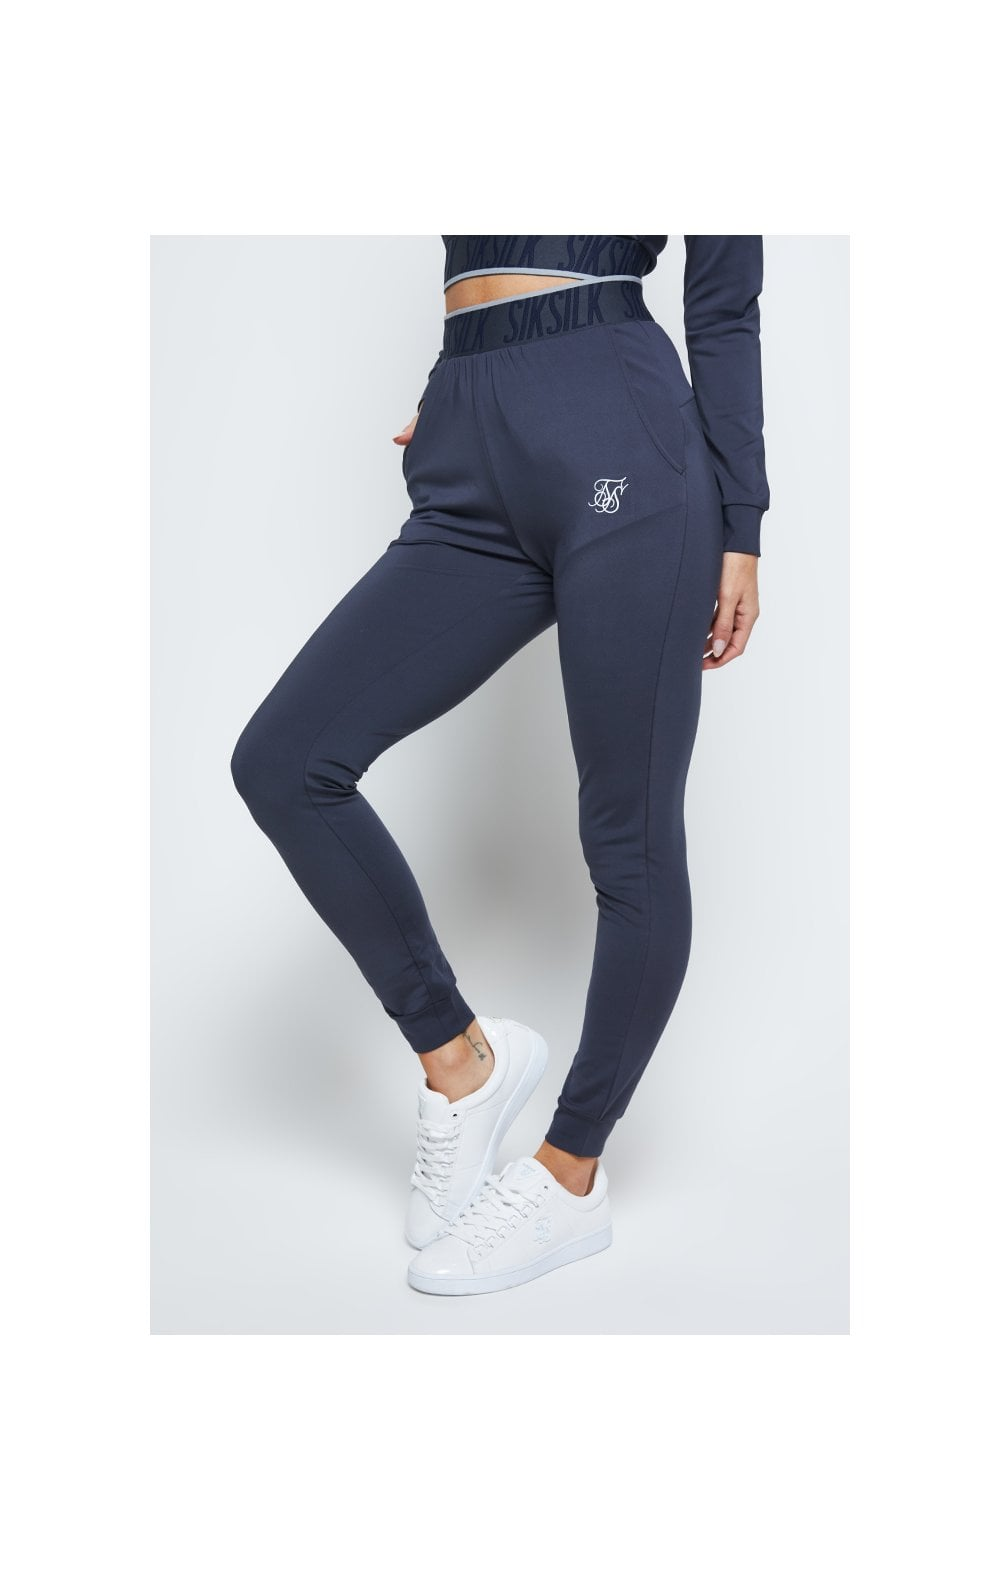 SikSilk Gravity Track Pants - Navy (1)